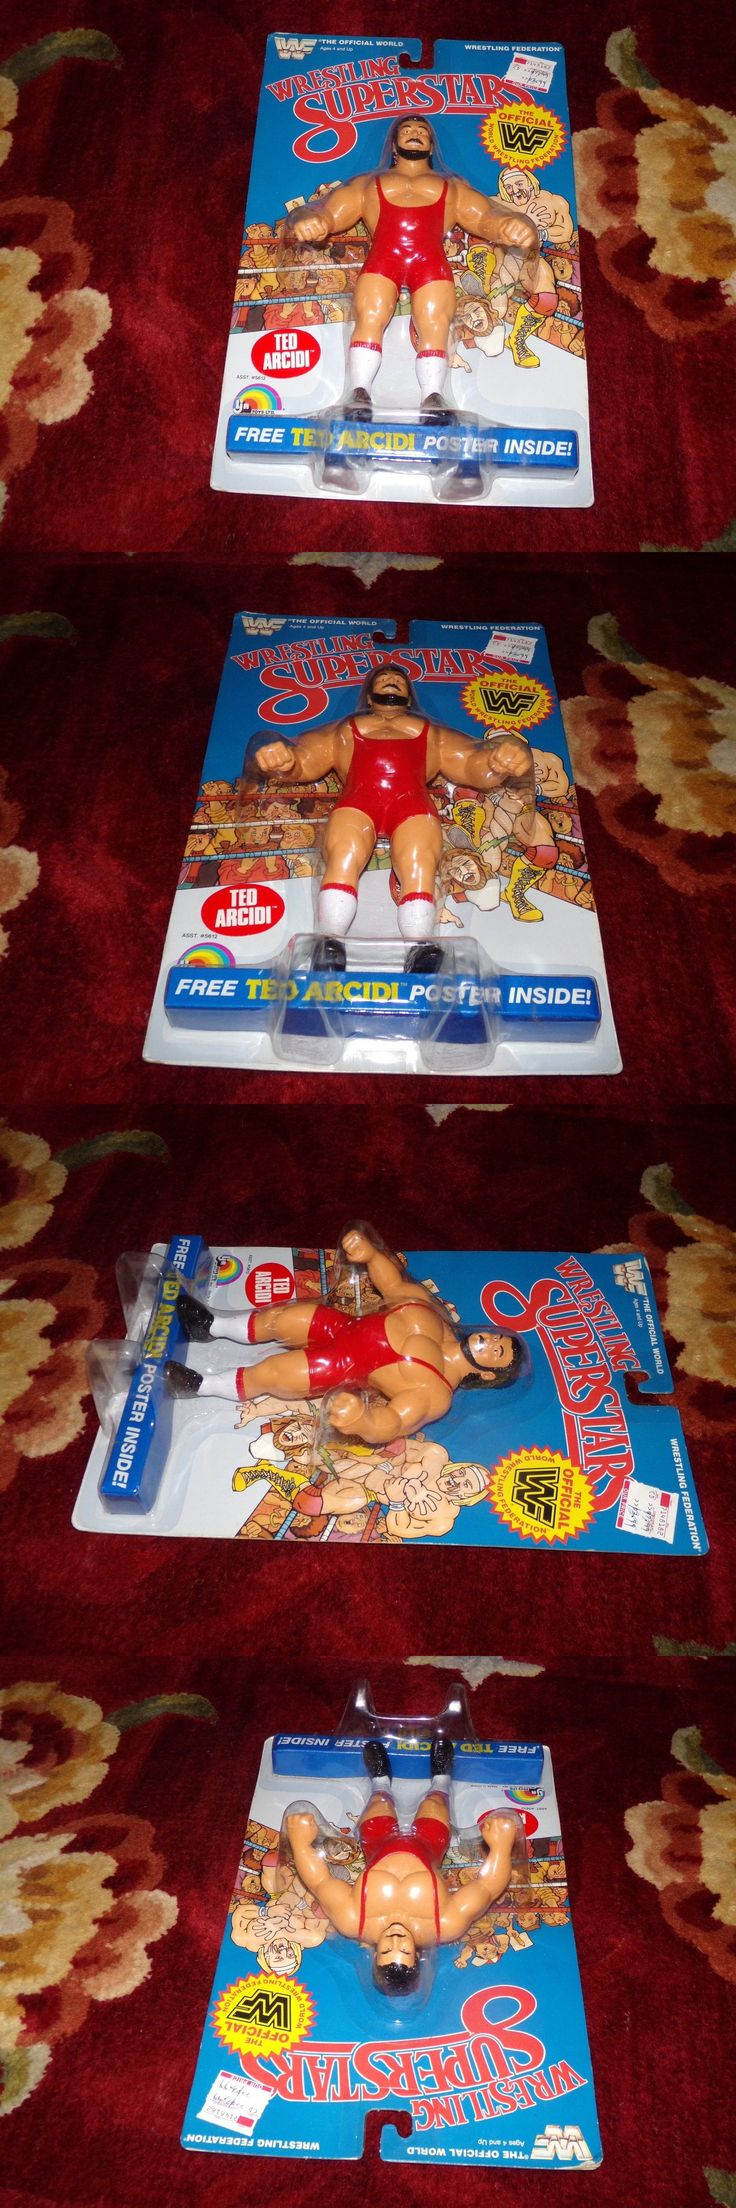 Sports 754: Moc Wwf Ljn Wrestling Superstars Ted Arcidi (1987) Figure - Wwe -> BUY IT NOW ONLY: $99.99 on eBay!